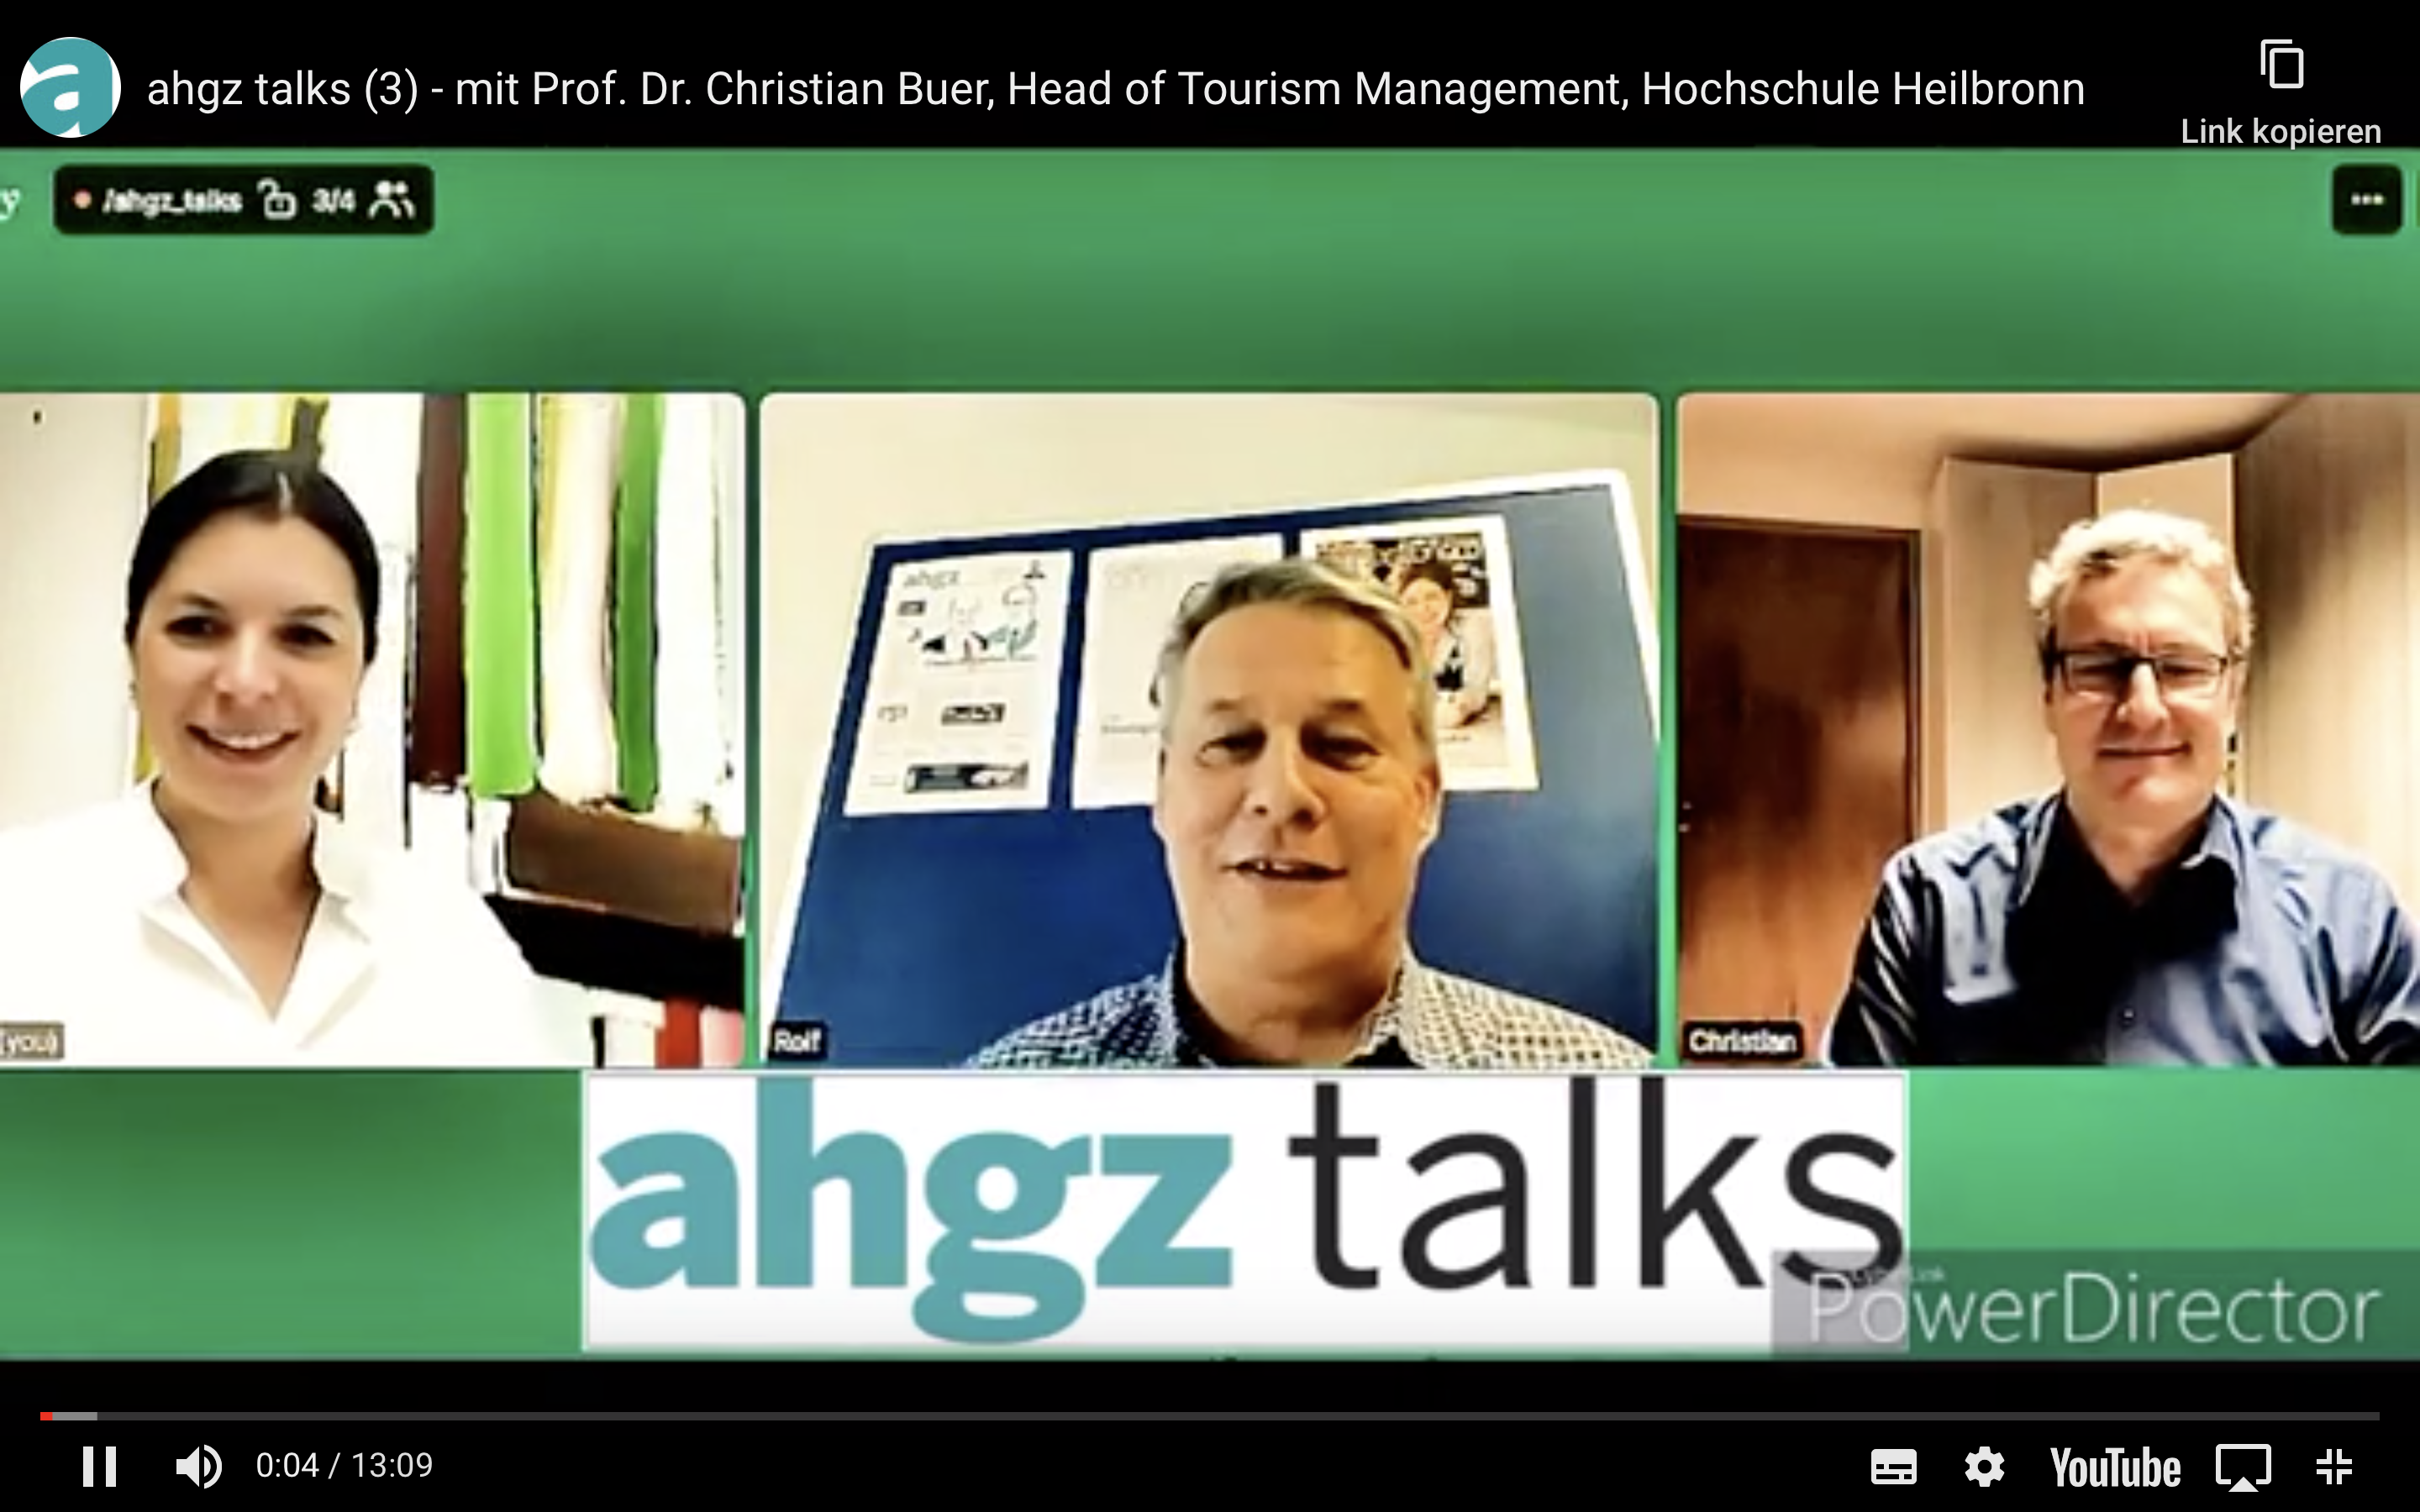 AHGZ Talks